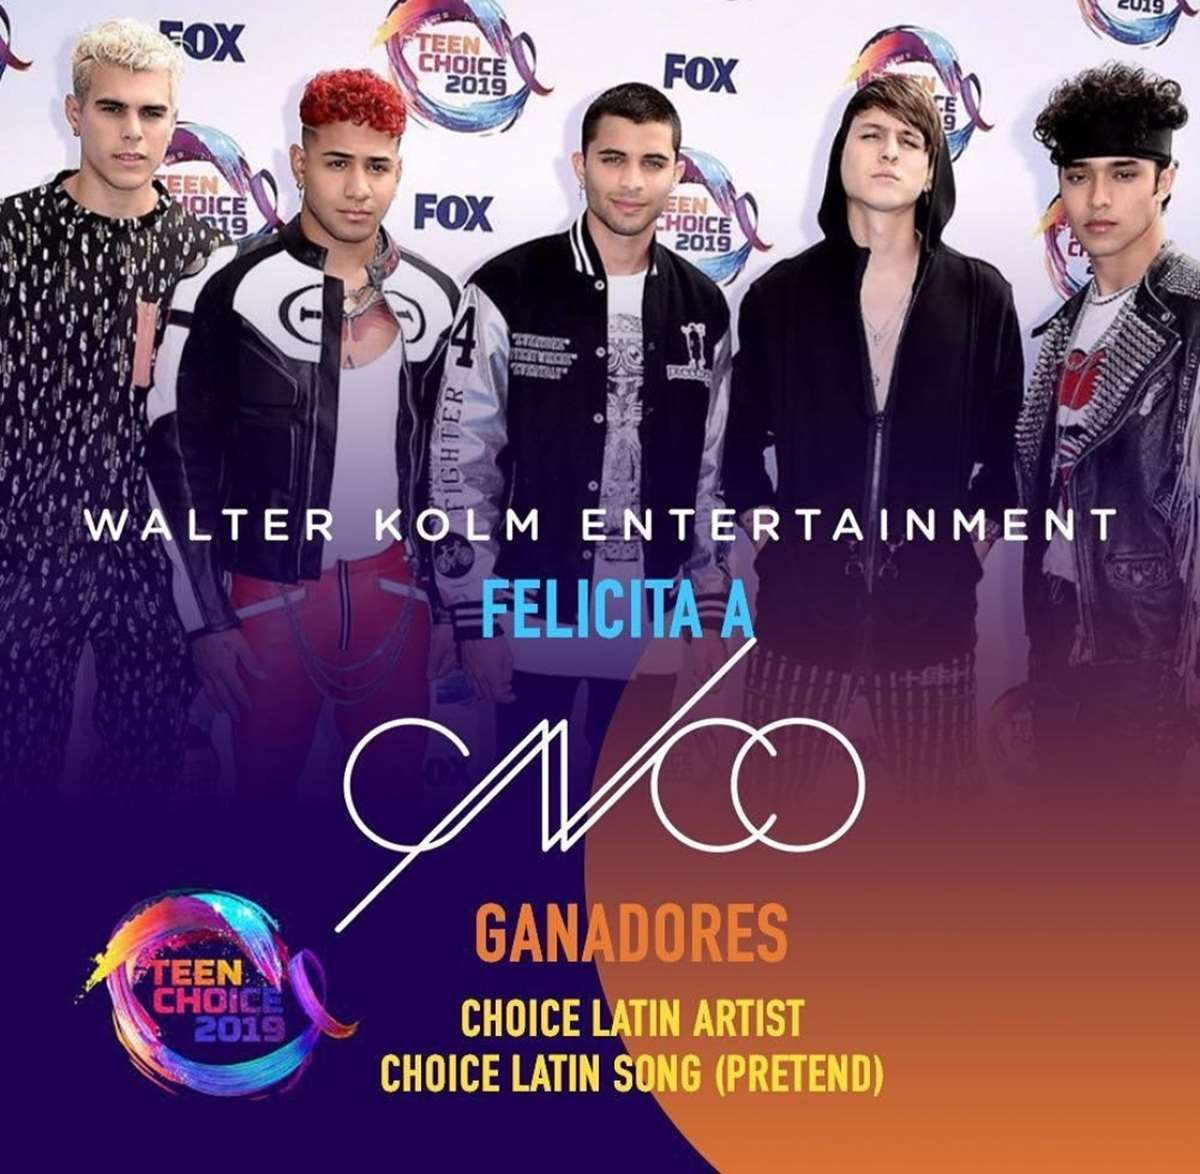 ¡¡CNCO gana dos Teen Choice Awards!!